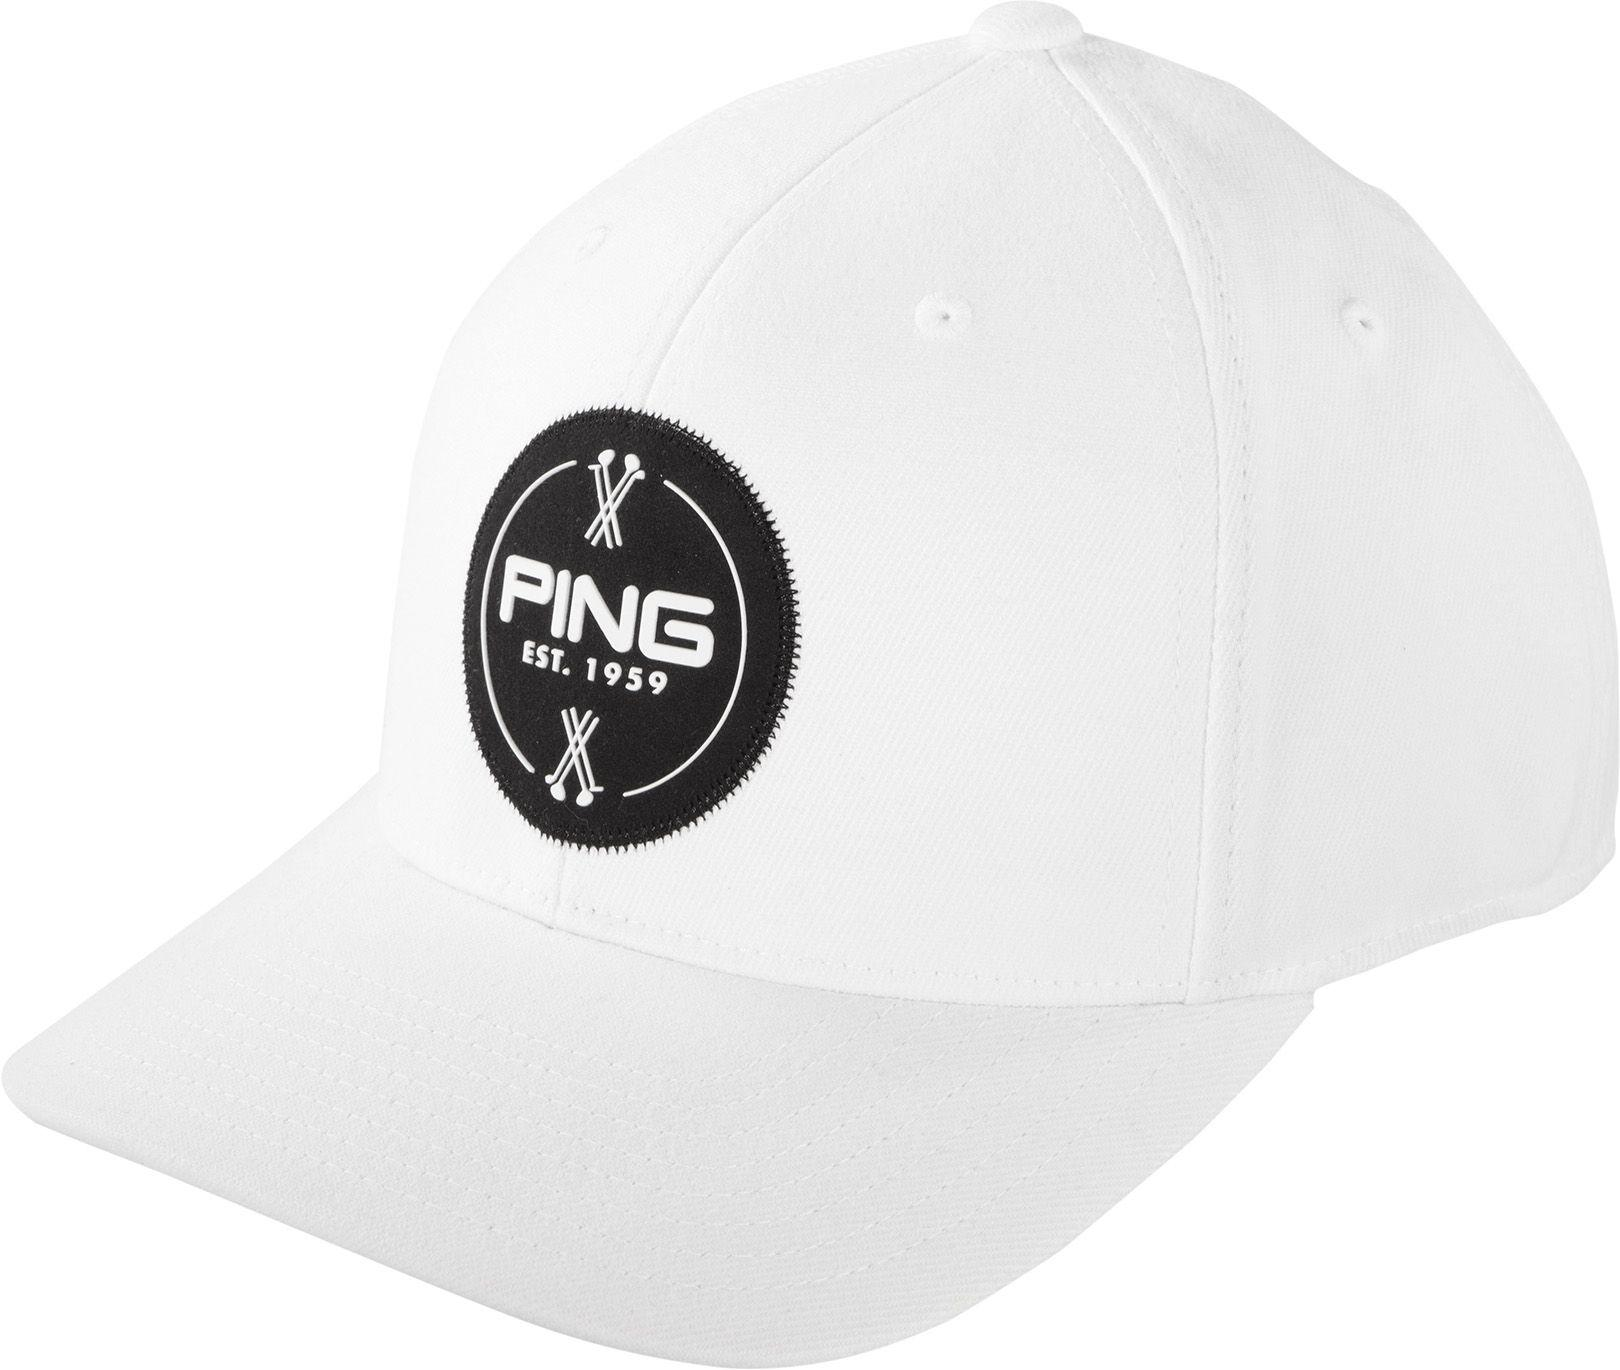 21578a5068c Ping - White Patch Golf Hat for Men - Lyst. View fullscreen